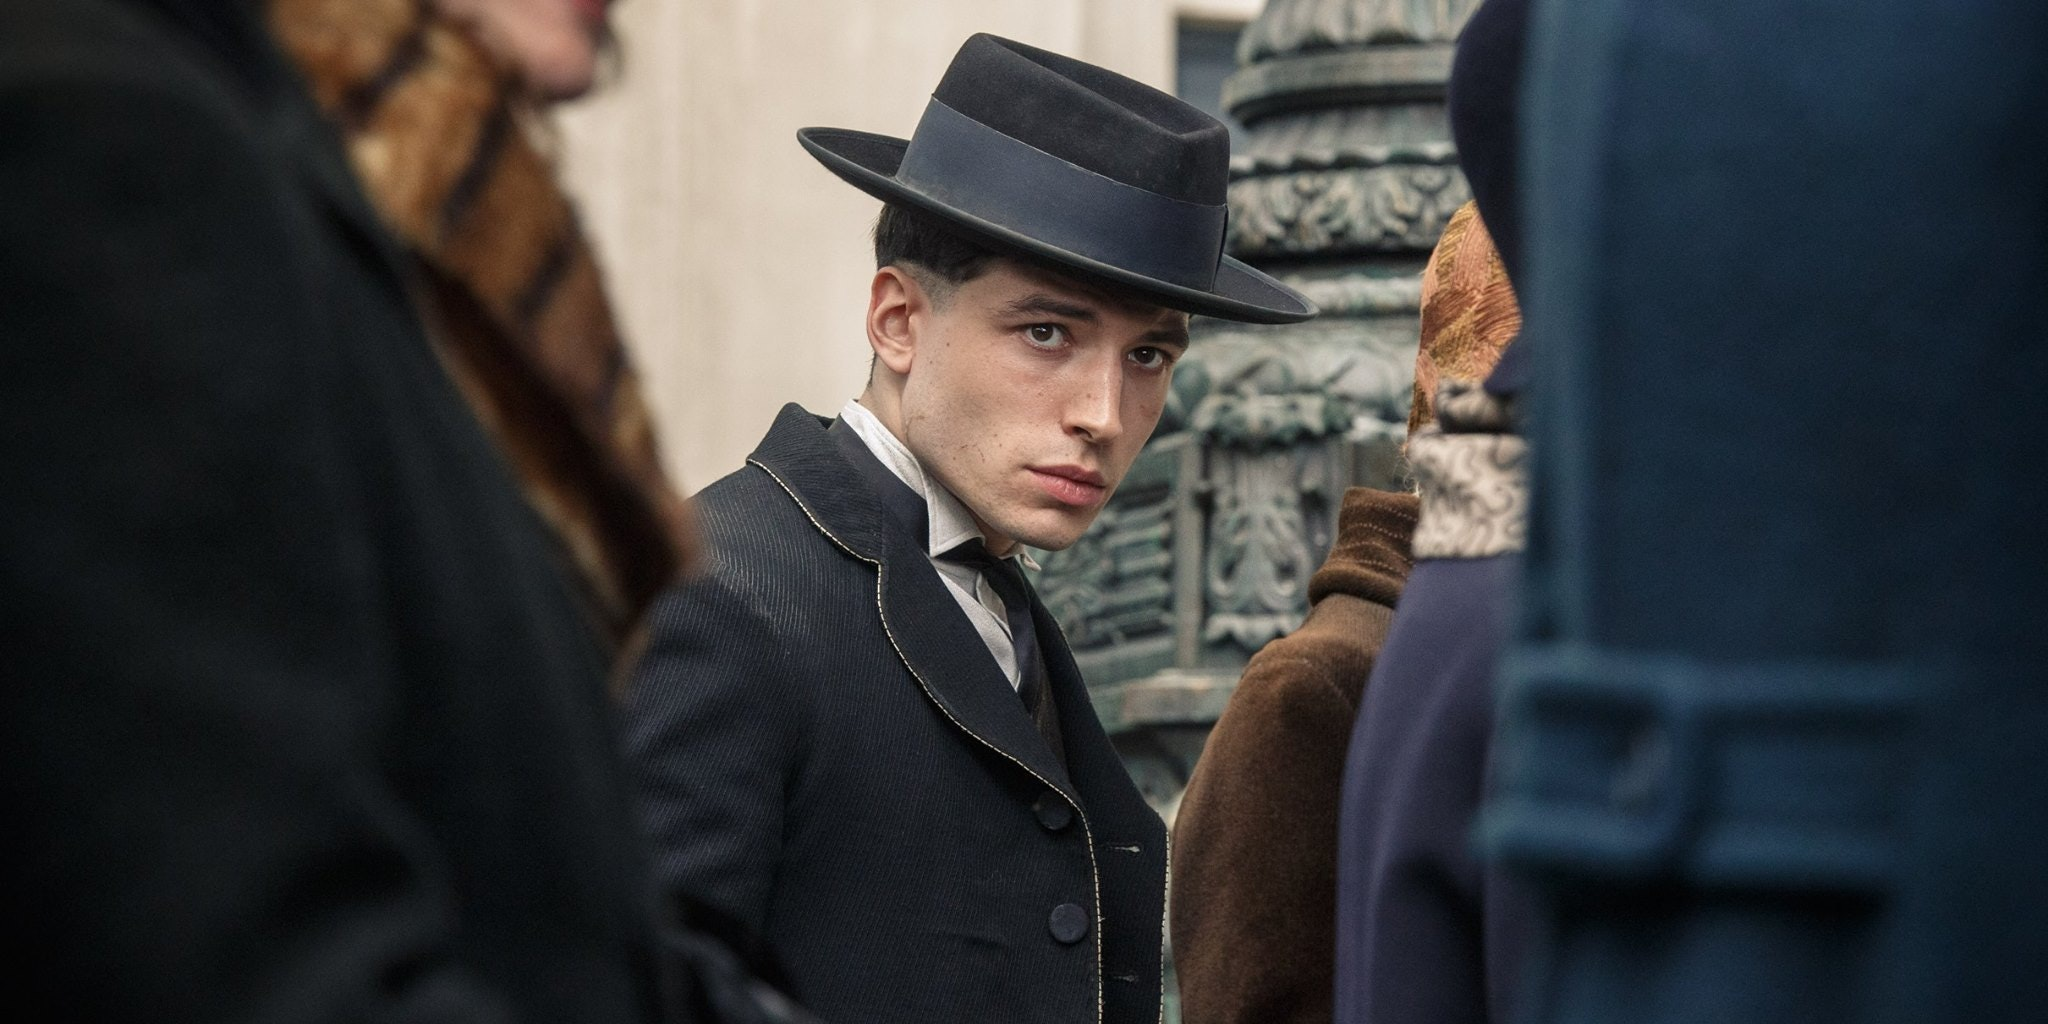 https://fsmedia.imgix.net/e0/37/c1/a3/e660/4c5d/9311/44137aa38827/ezra-miller-as-credence-barebone-in-fantastic-beasts-and-where-to-find-them.jpeg?rect=0%2C0%2C2048%2C1024&auto=format%2Ccompress&w=650